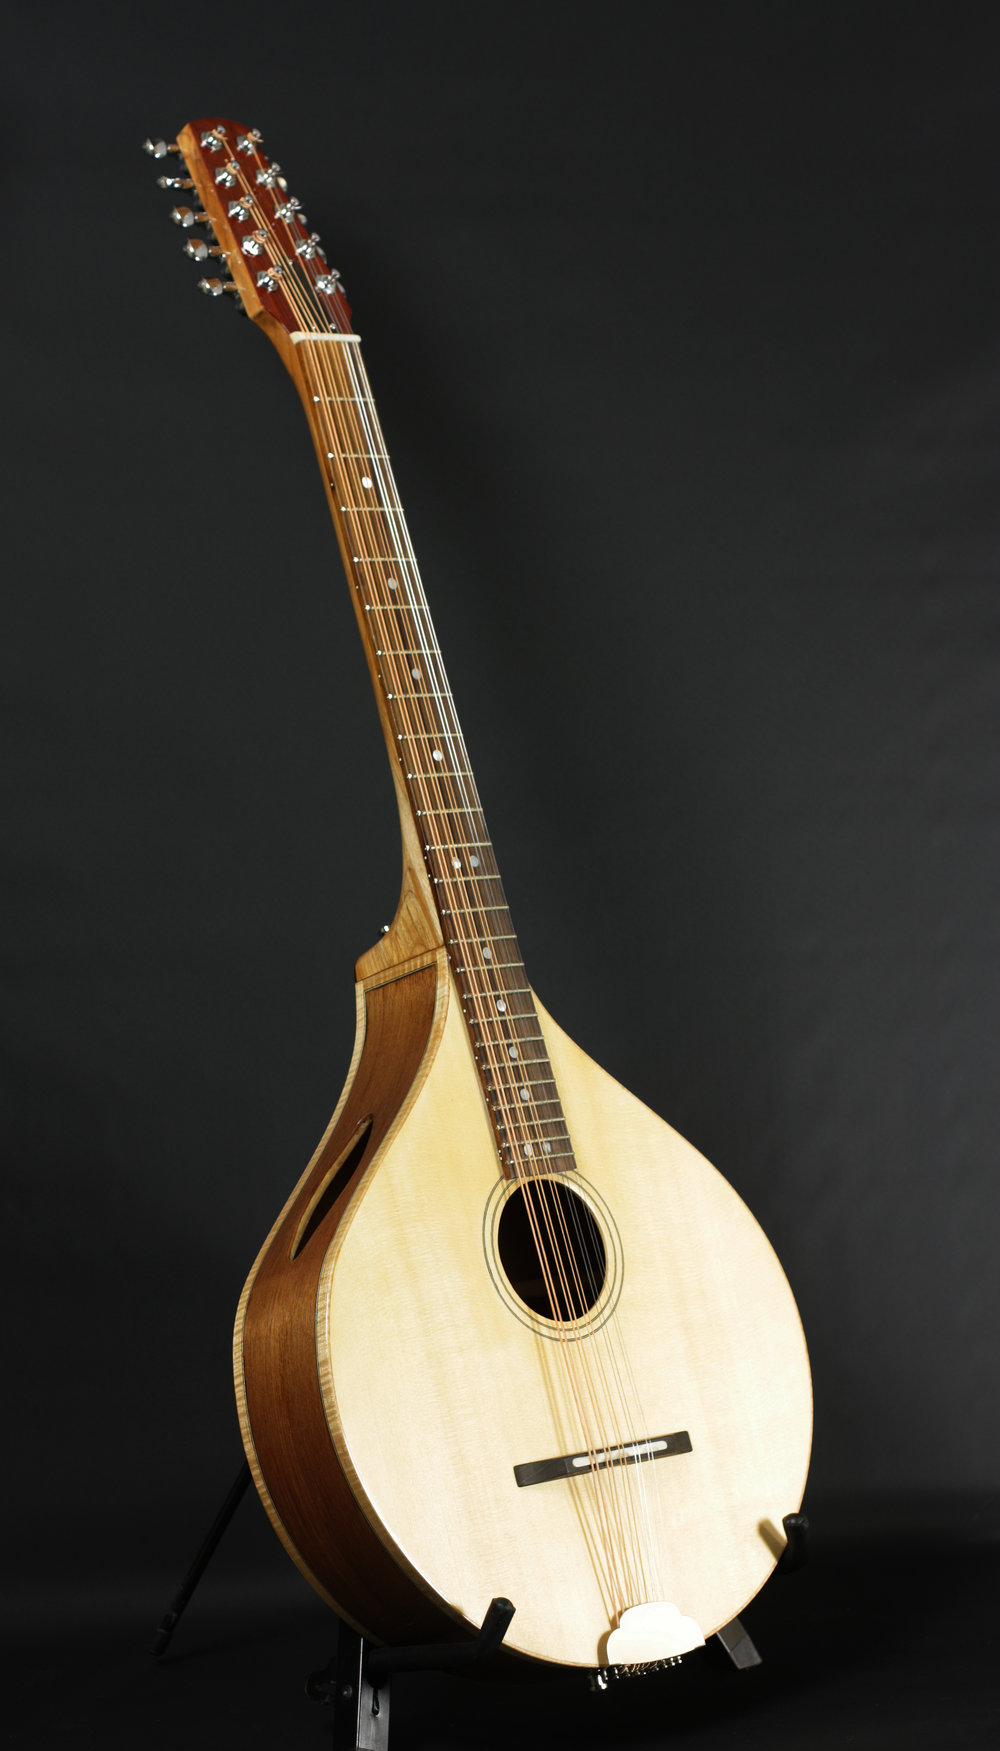 Irish Bouzouki - 10 string or 8 string Irish Bouzouki. 24.9